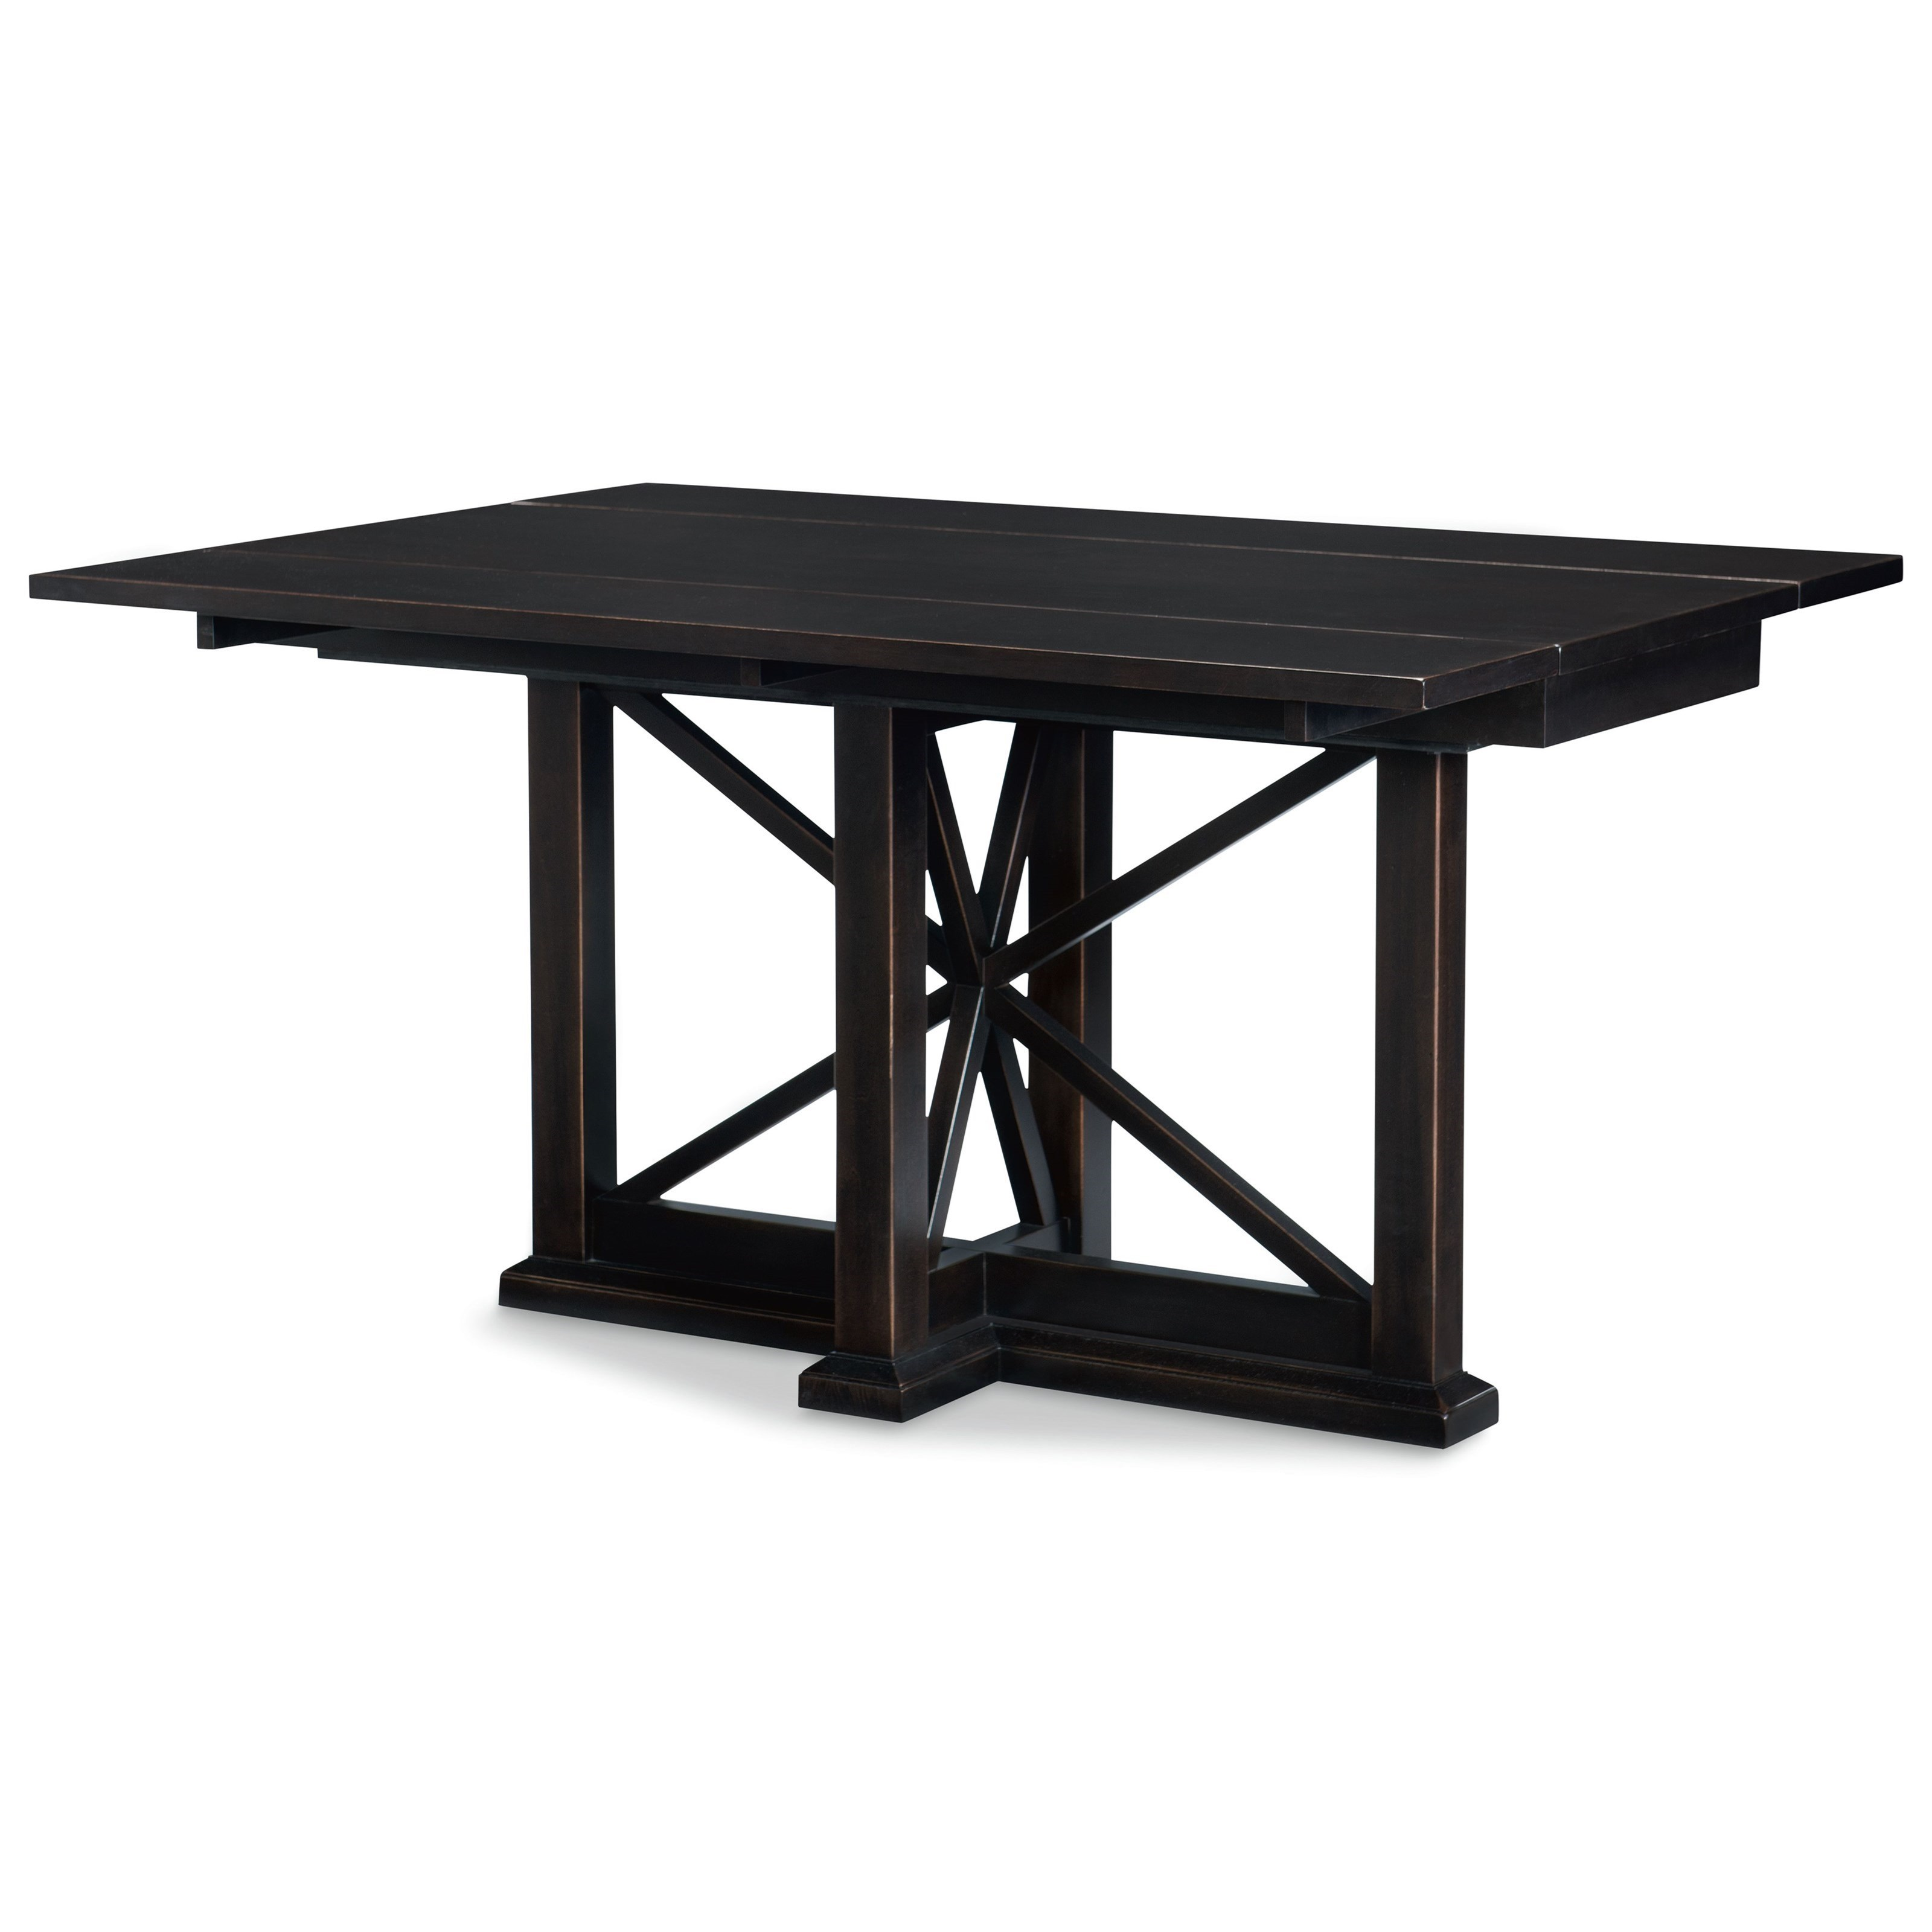 Rachael Ray Home by Legacy Classic Everyday Dining Drop Leaf Dining Table - Item Number: 7003-506